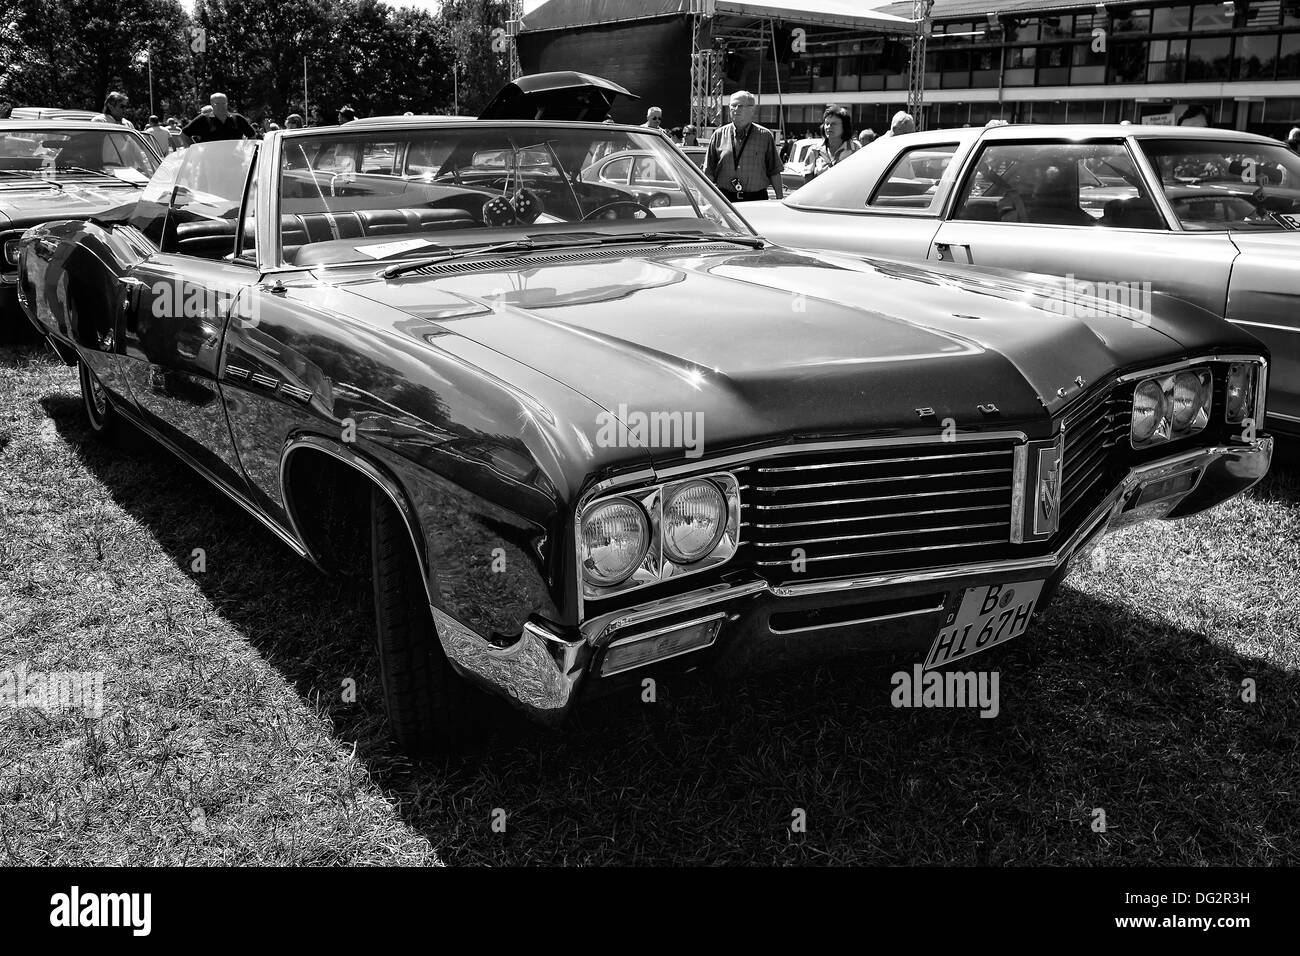 Full-size car Buick Le Sabre Custom 1967, Cabrio, (black and white) - Stock Image